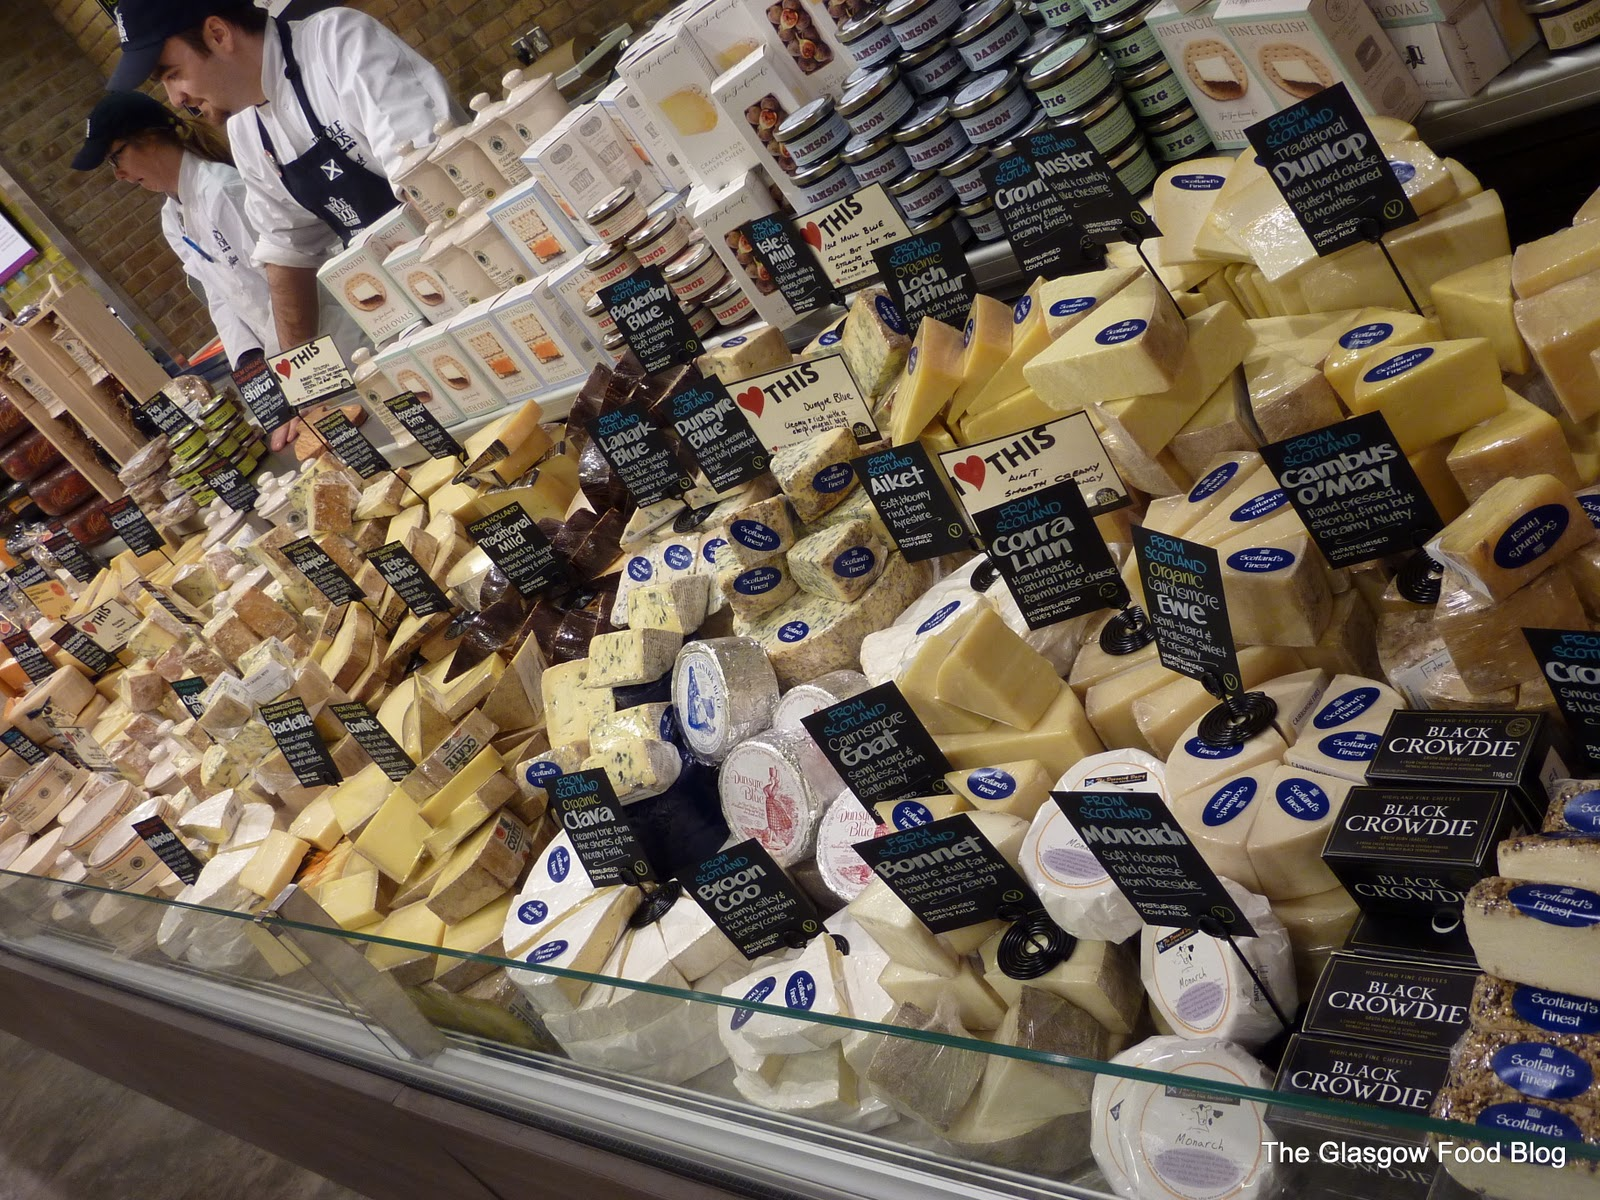 This cheese selection should come with a warning sign